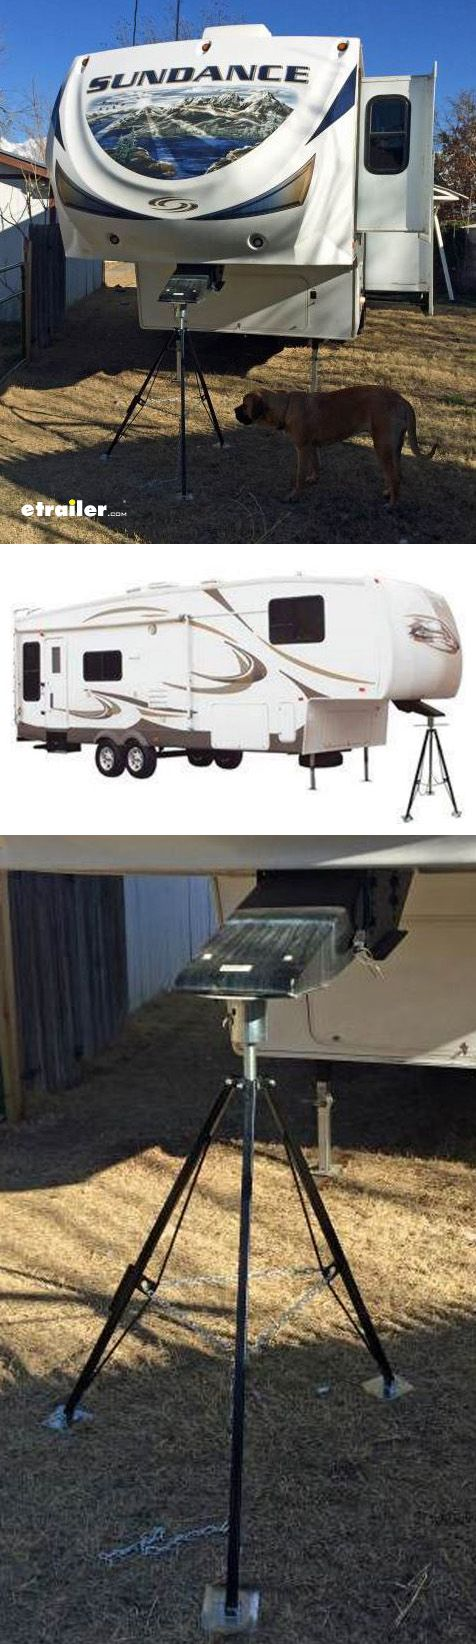 Quickly and easily stabilize your unhitched fifth-wheel camper or trailer with this sturdy steel tripod. Adjustable hitch cup makes setup a snap, and the included padlock provides an effective theft deterrent.